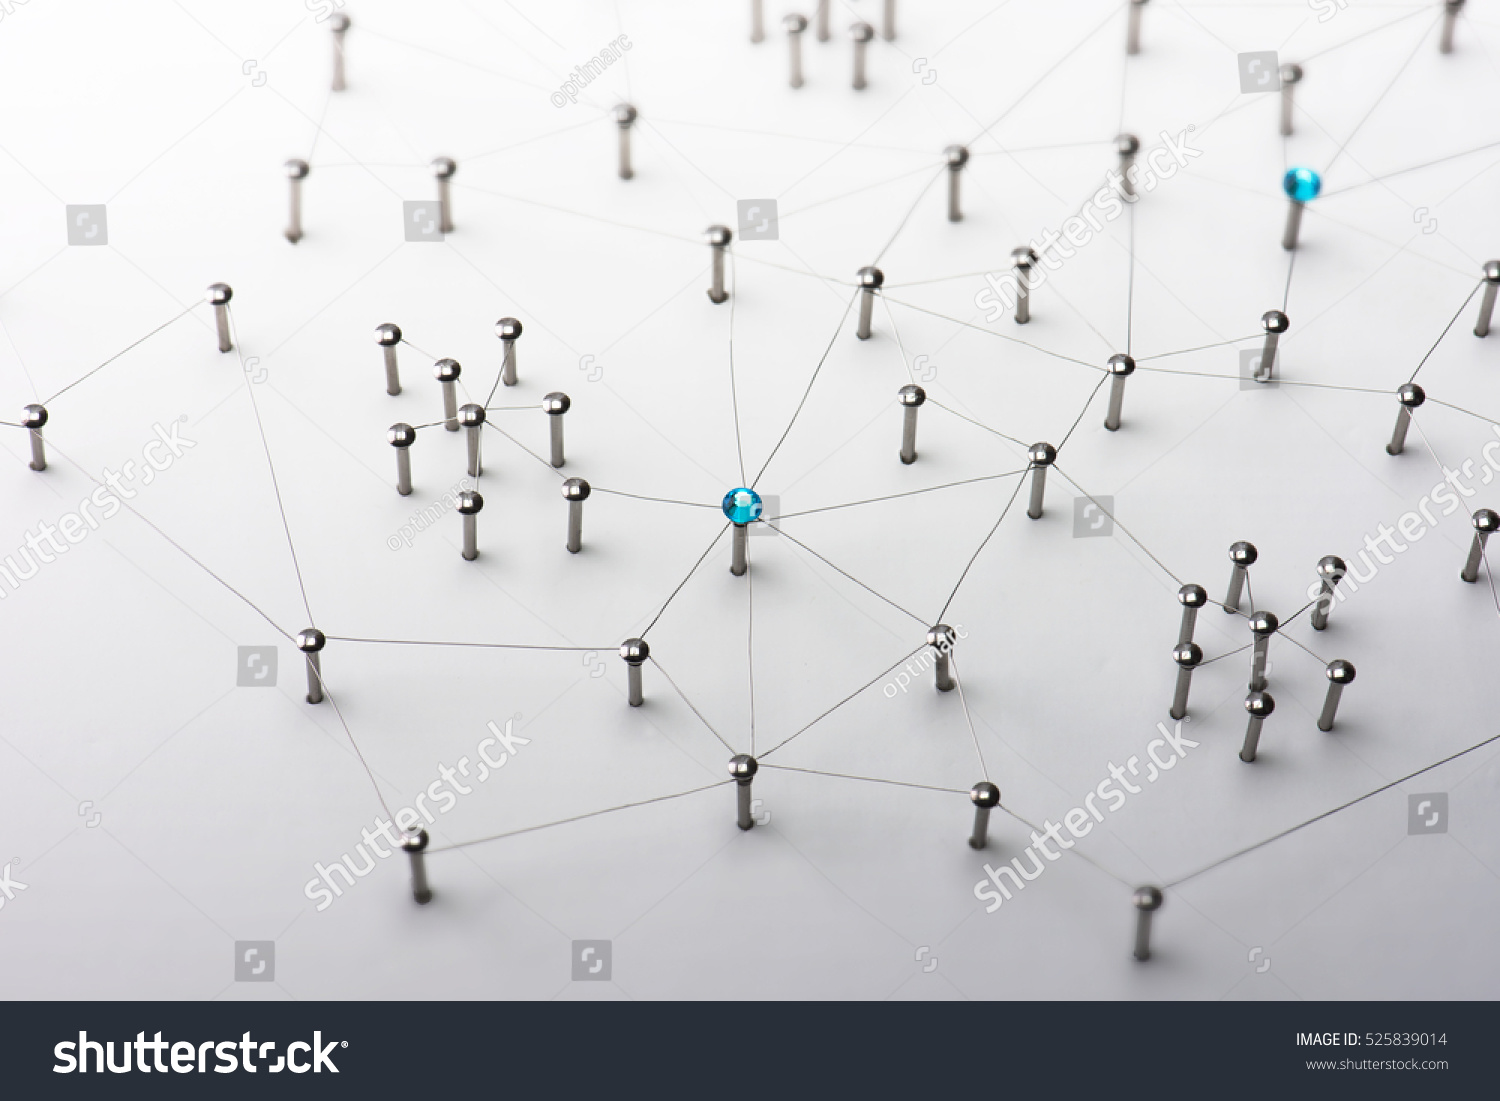 hight resolution of network networking social media connectivity internet communication abstract